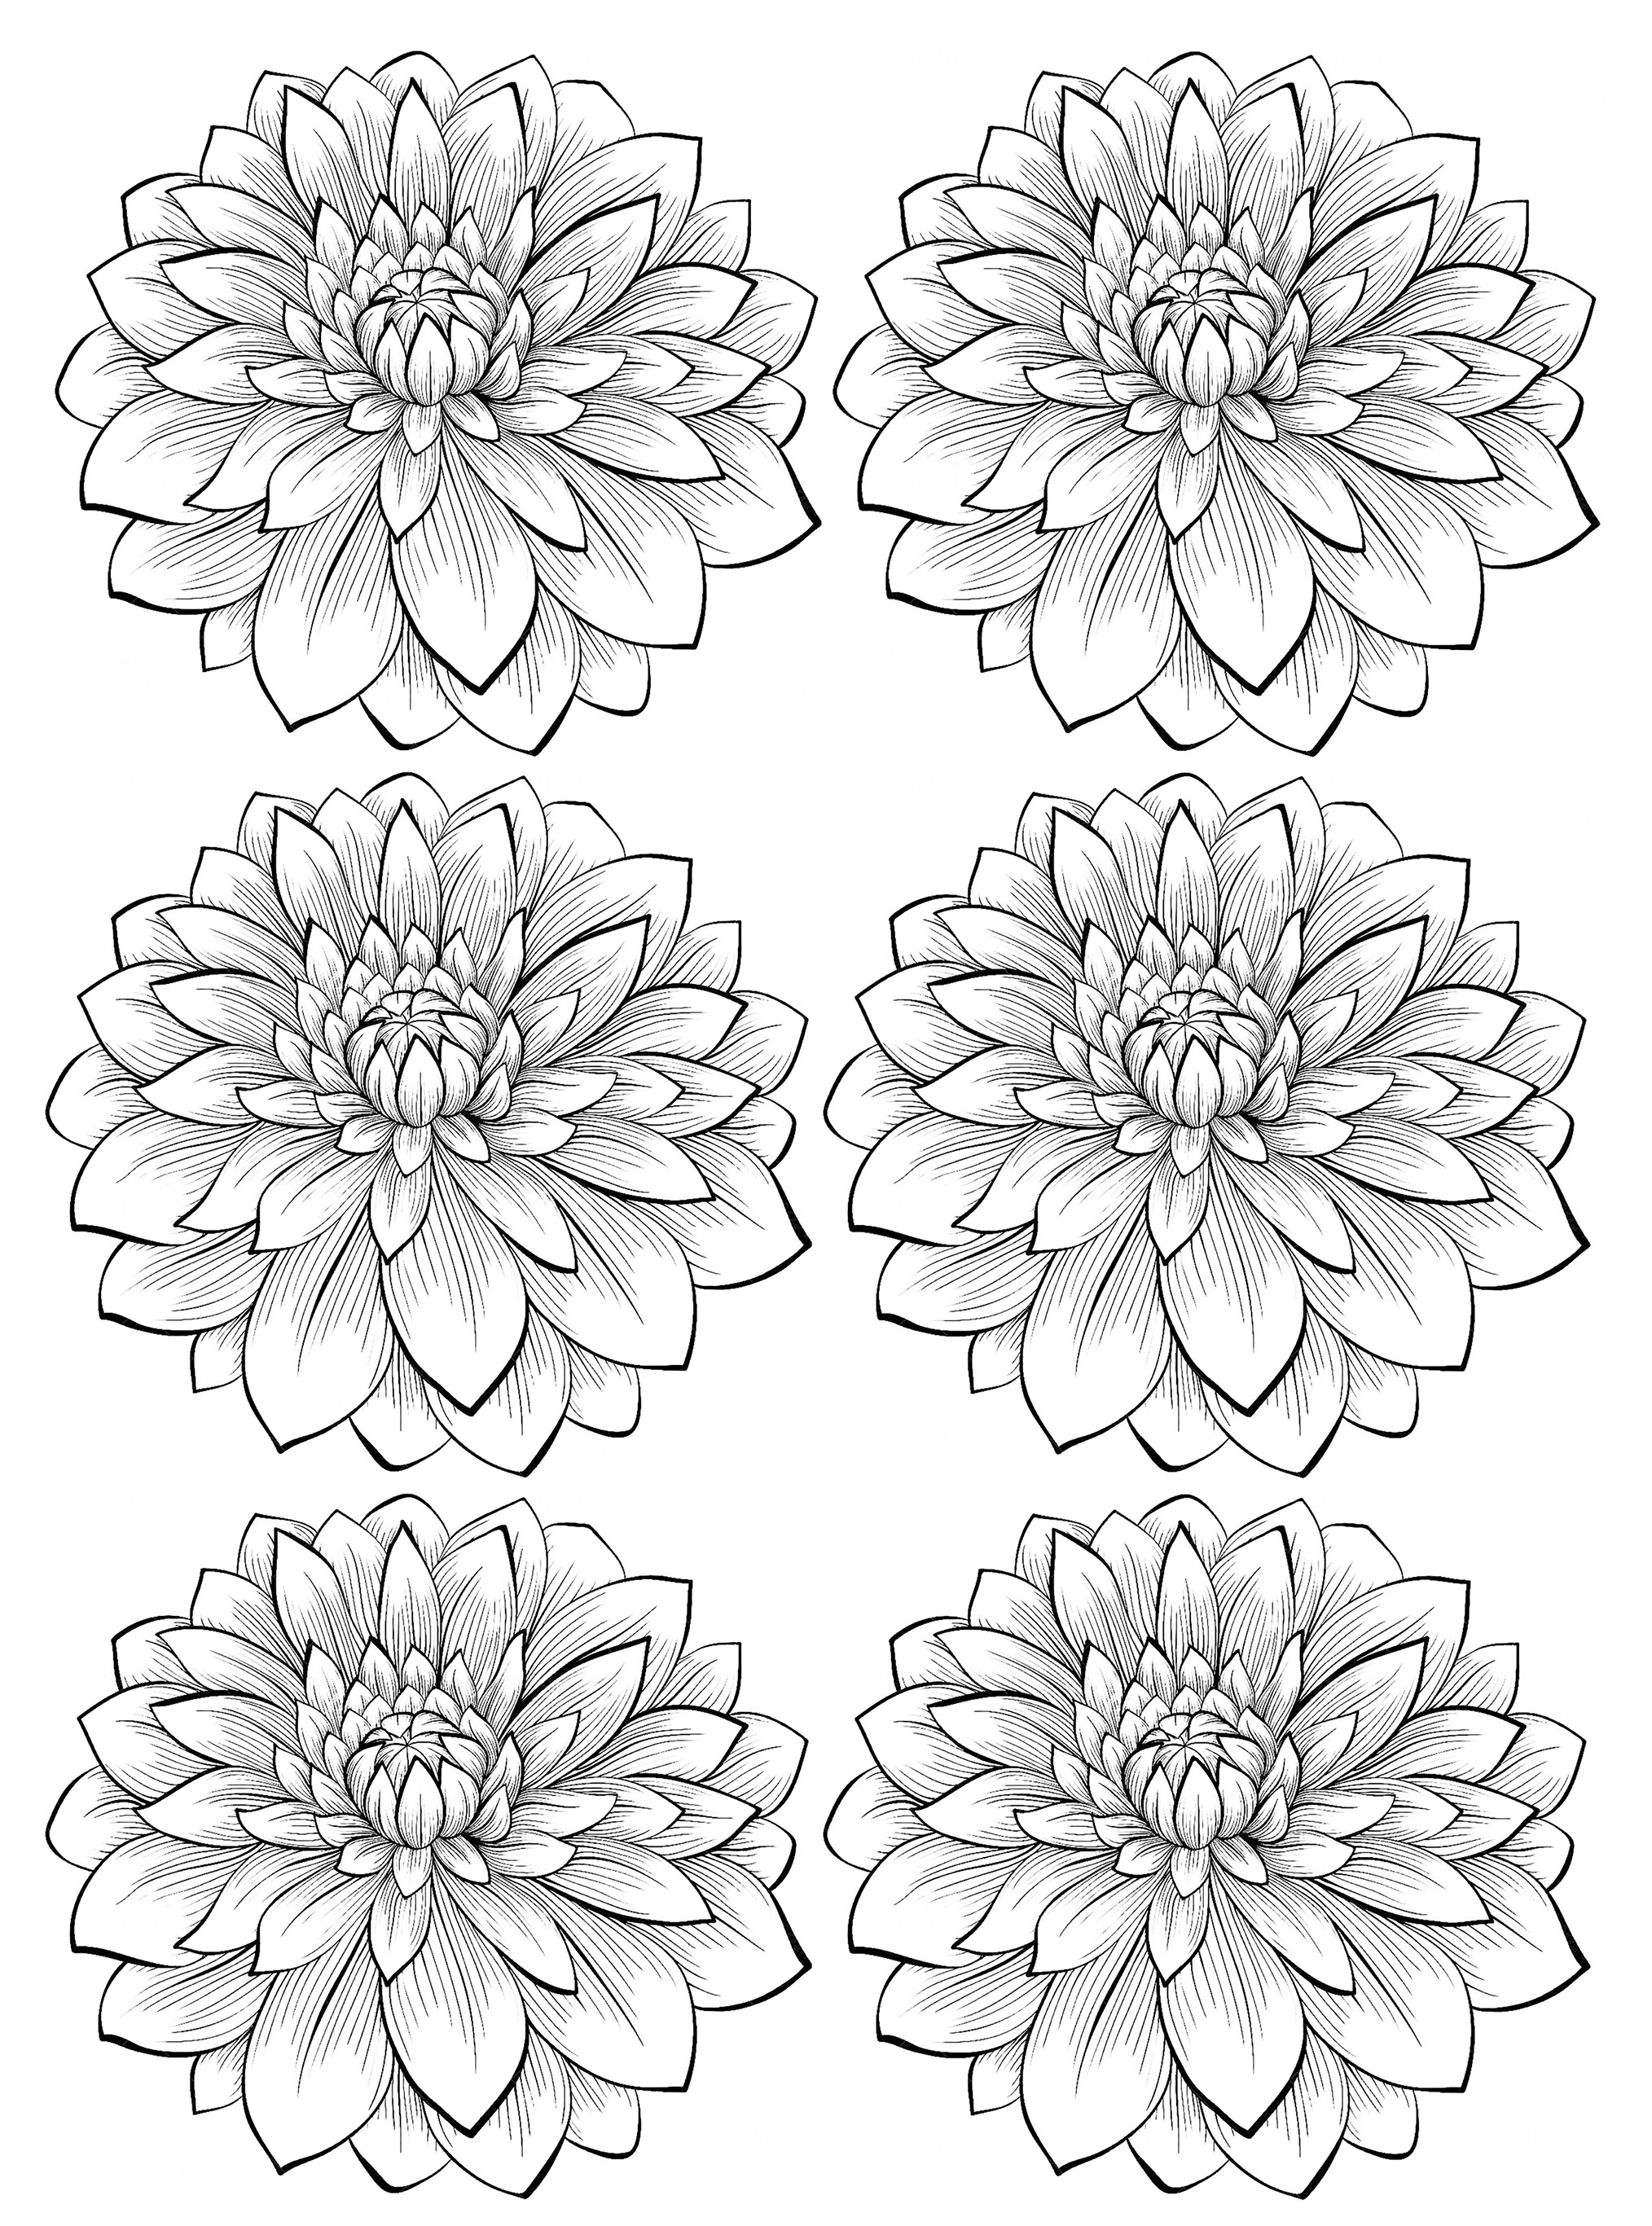 Six dahlia flower flowers adult coloring pages for Flower adult coloring pages